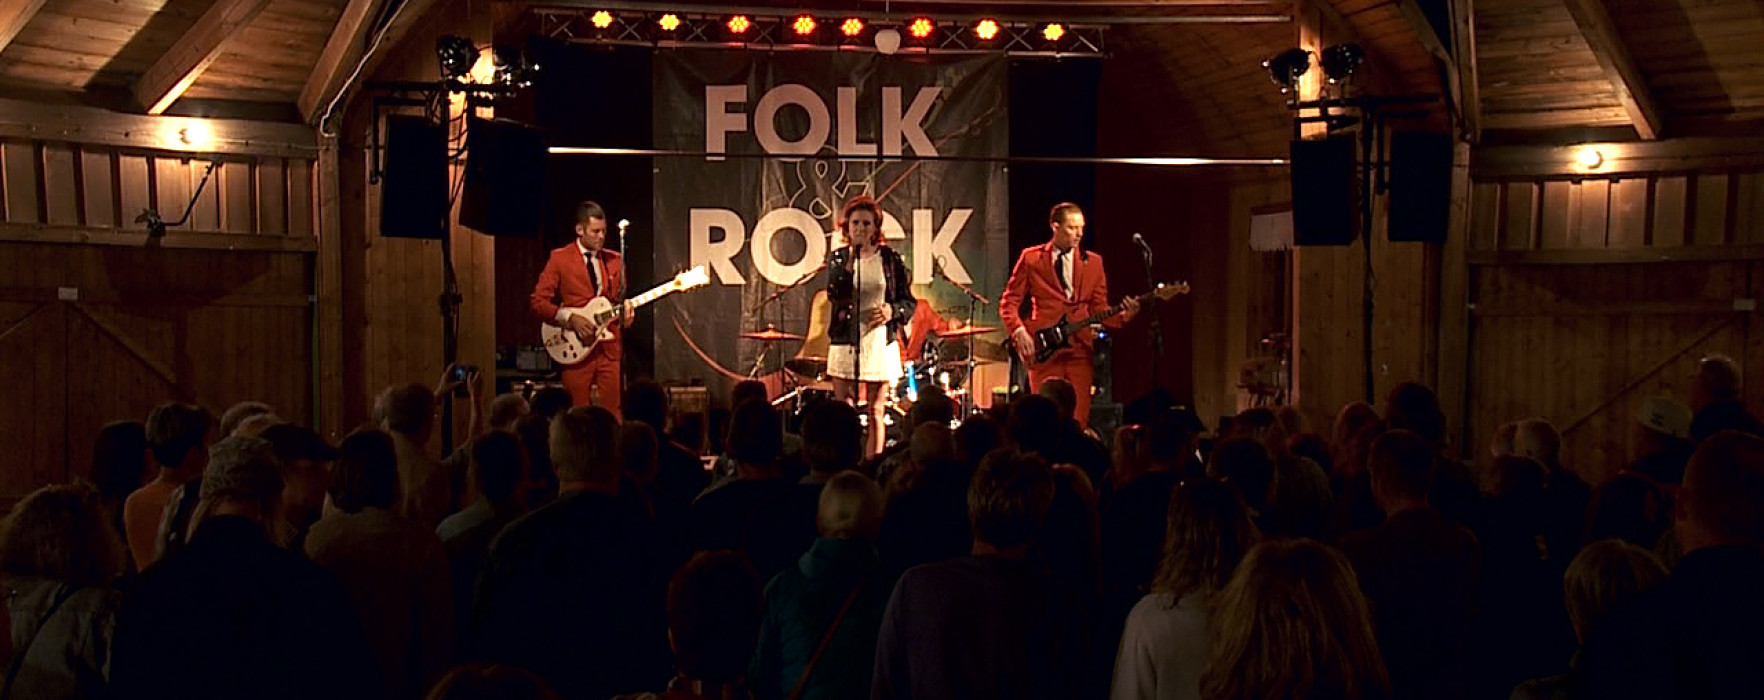 Glimt – Folk & Rock i Segmon, The Vanjas (ep 1:6)